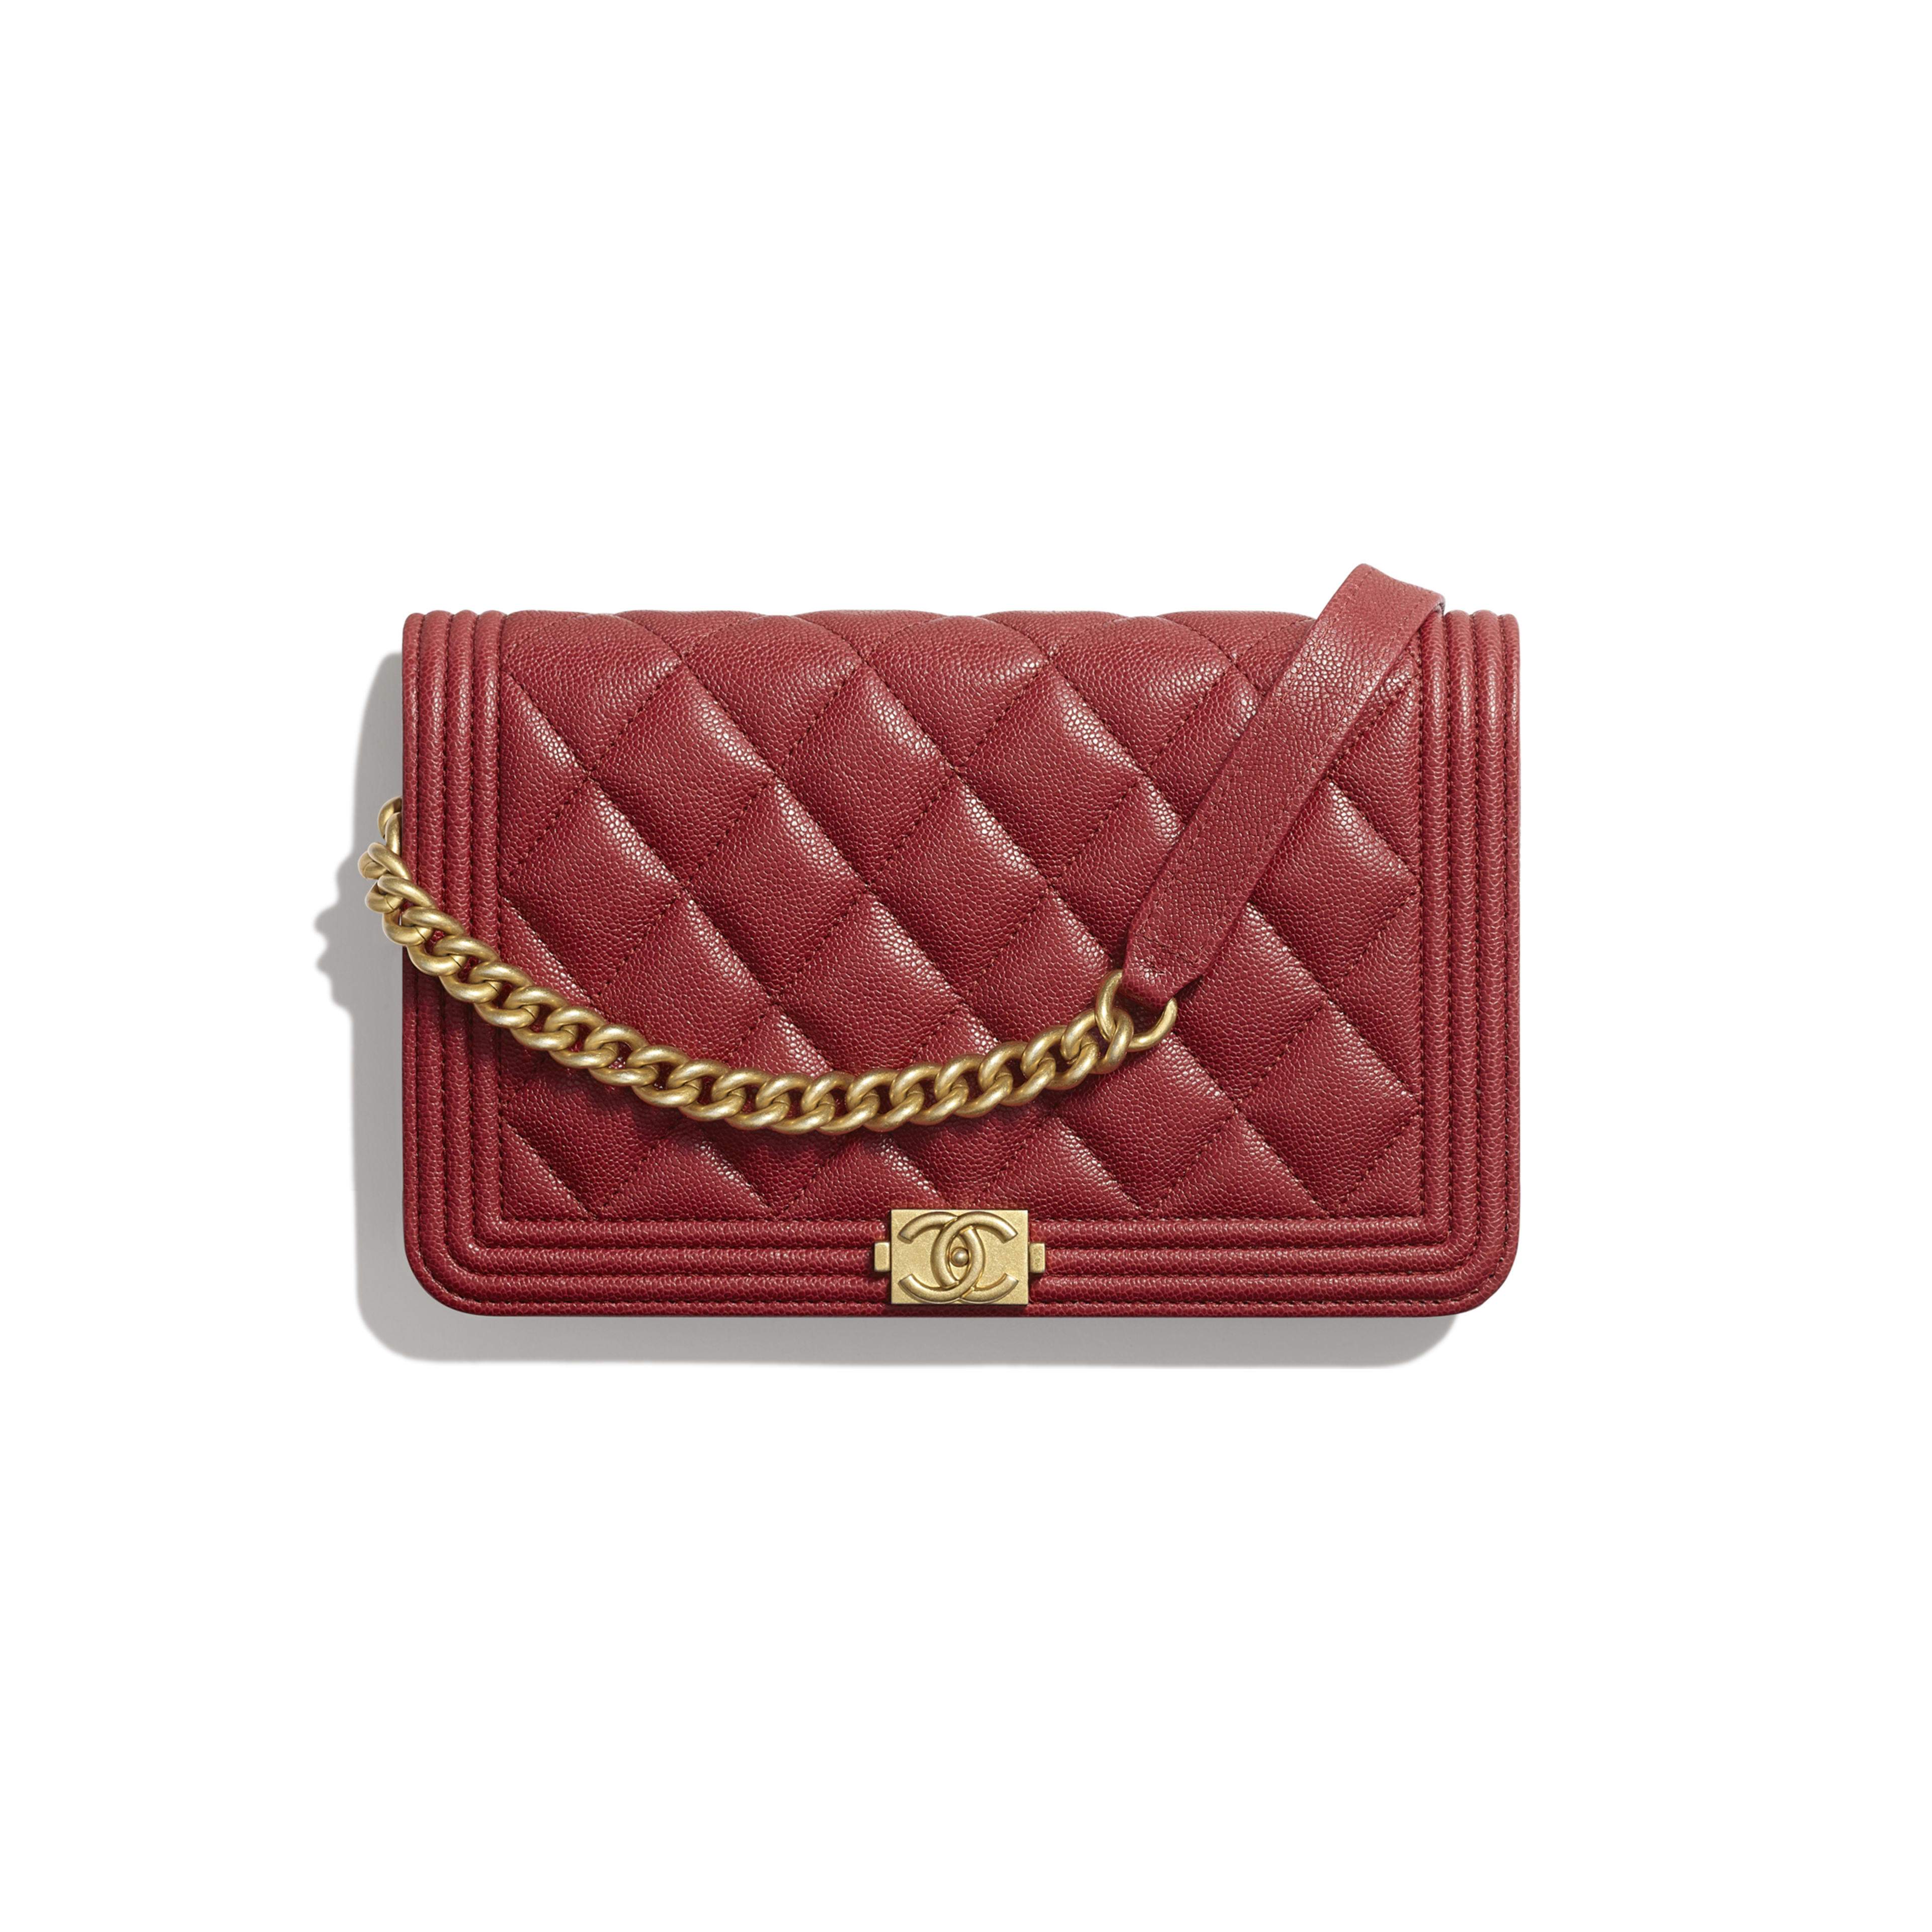 BOY CHANEL Wallet on Chain - Red - Grained Calfskin & Gold-Tone Metal - Default view - see full sized version